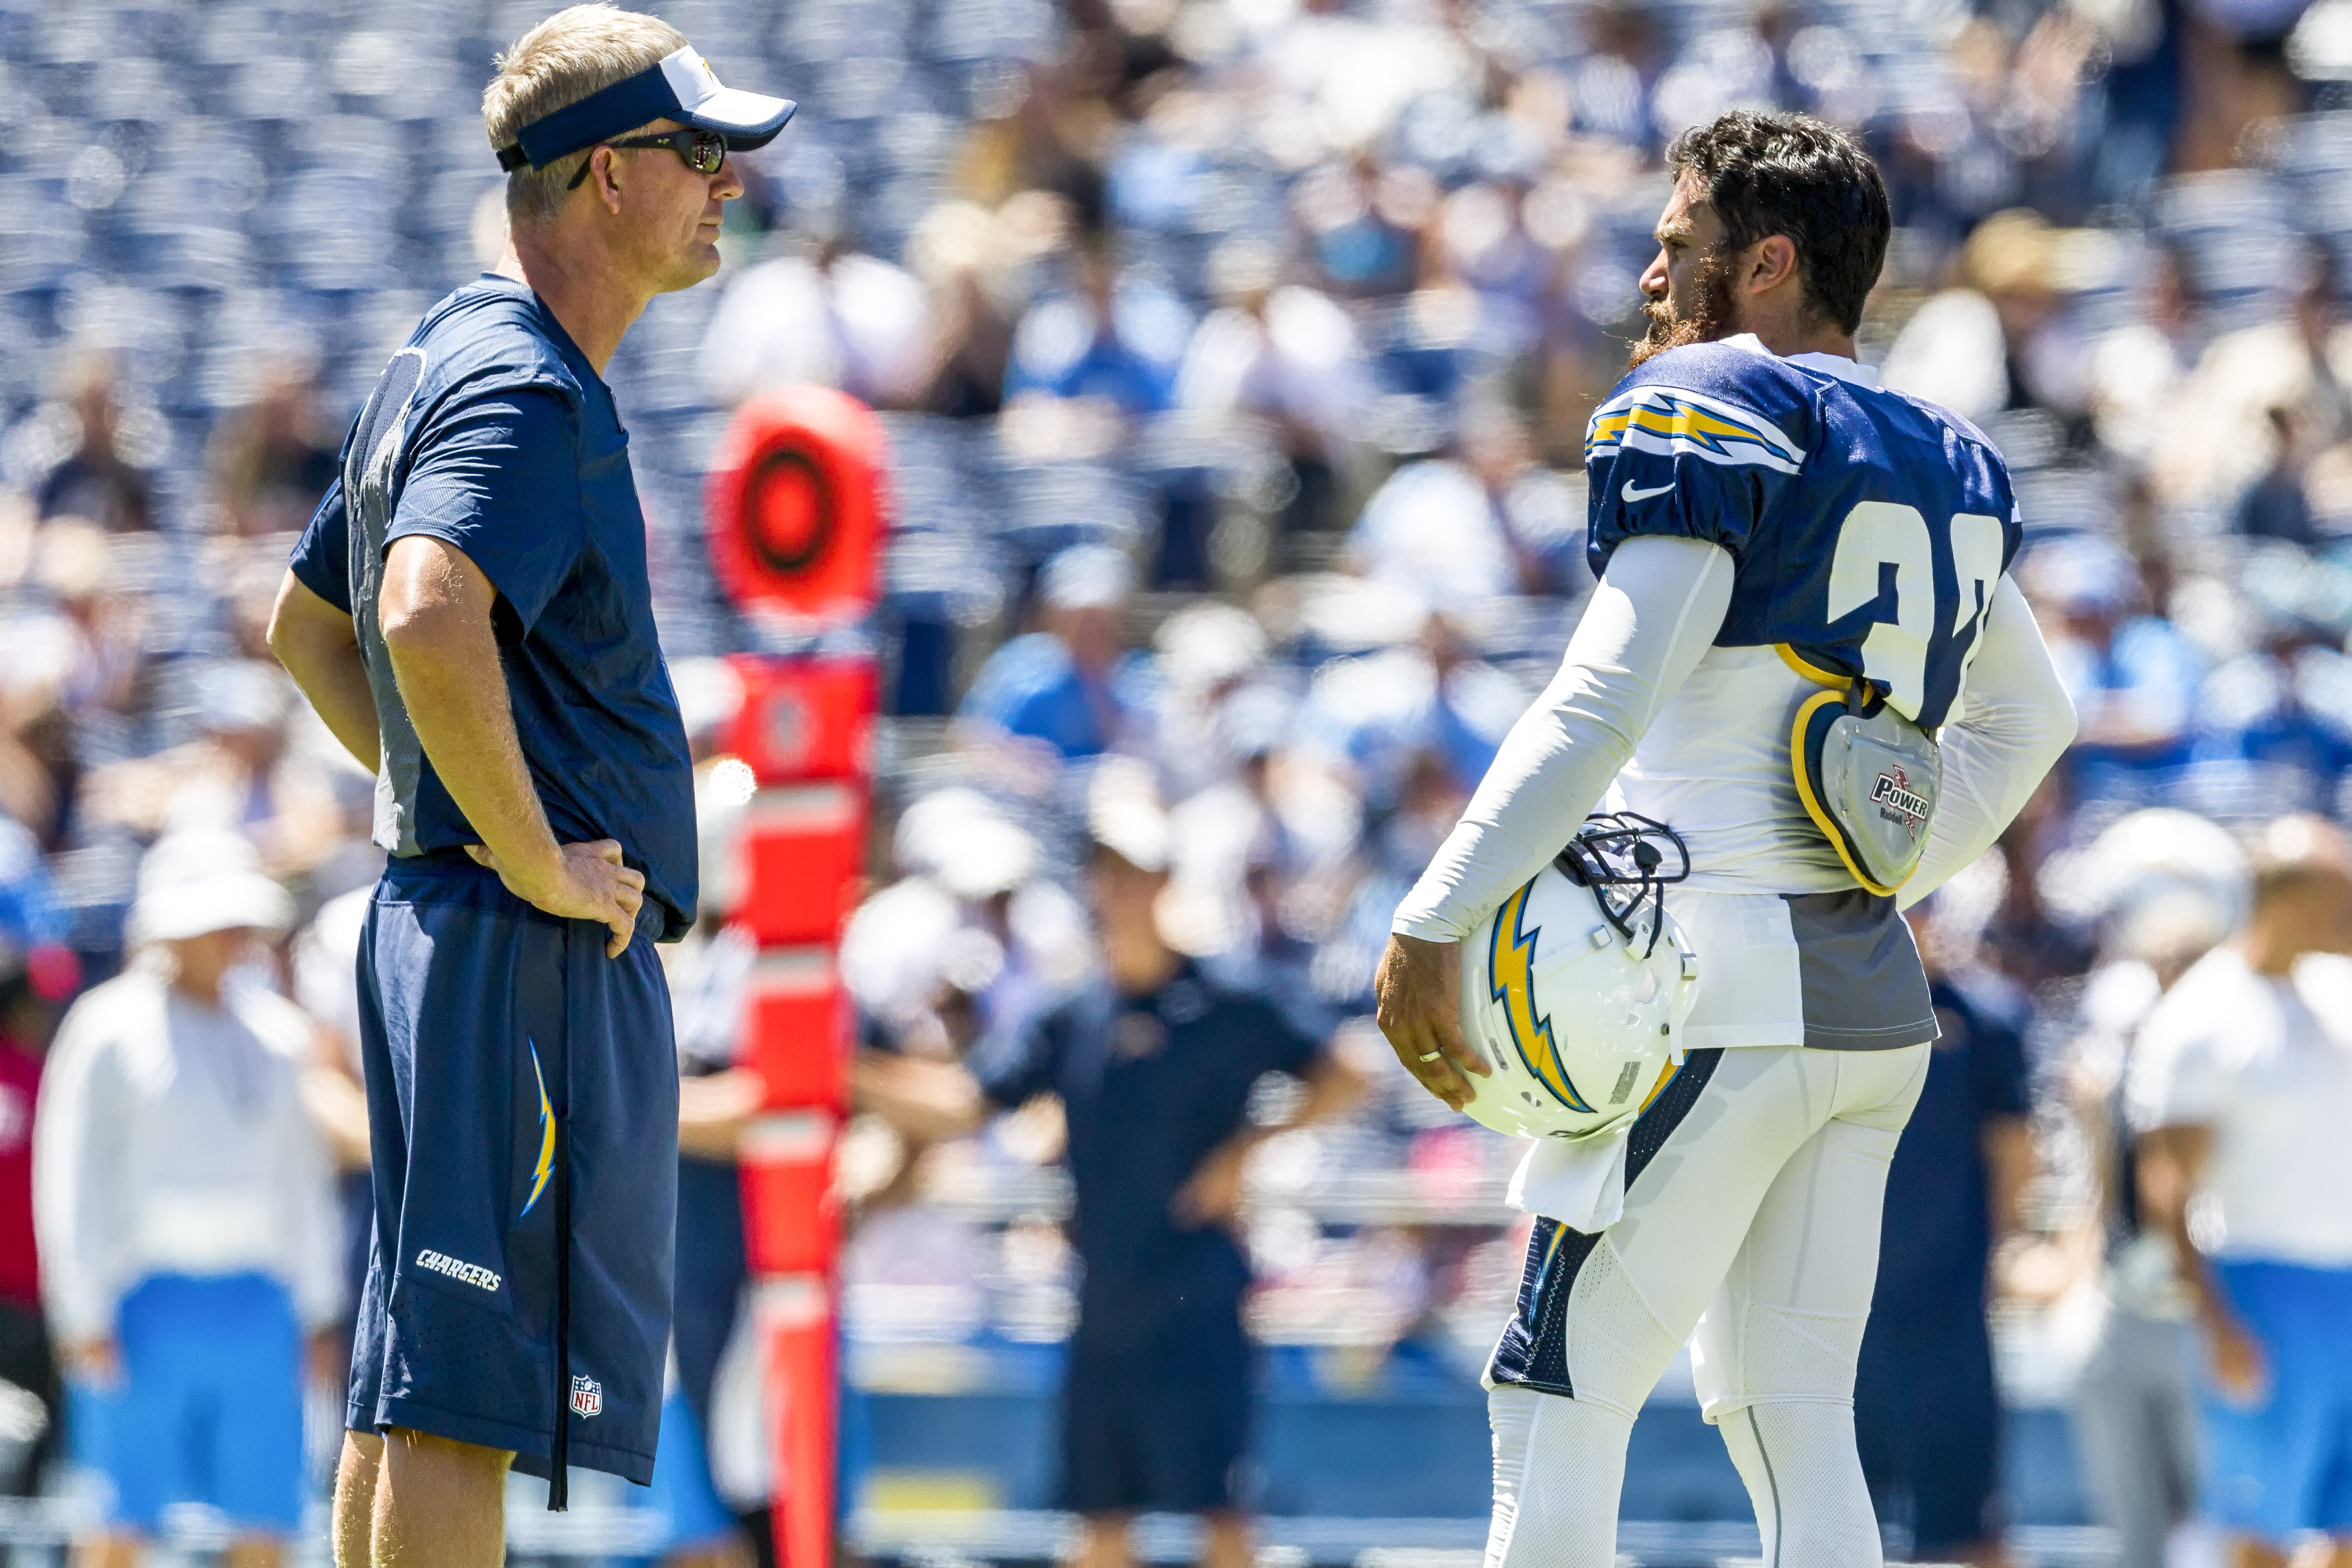 San Diego Chargers head coach Mike McCoy, left, and free safety Eric Weddle during Fan Fest 2015. Photo by Bill Reilly